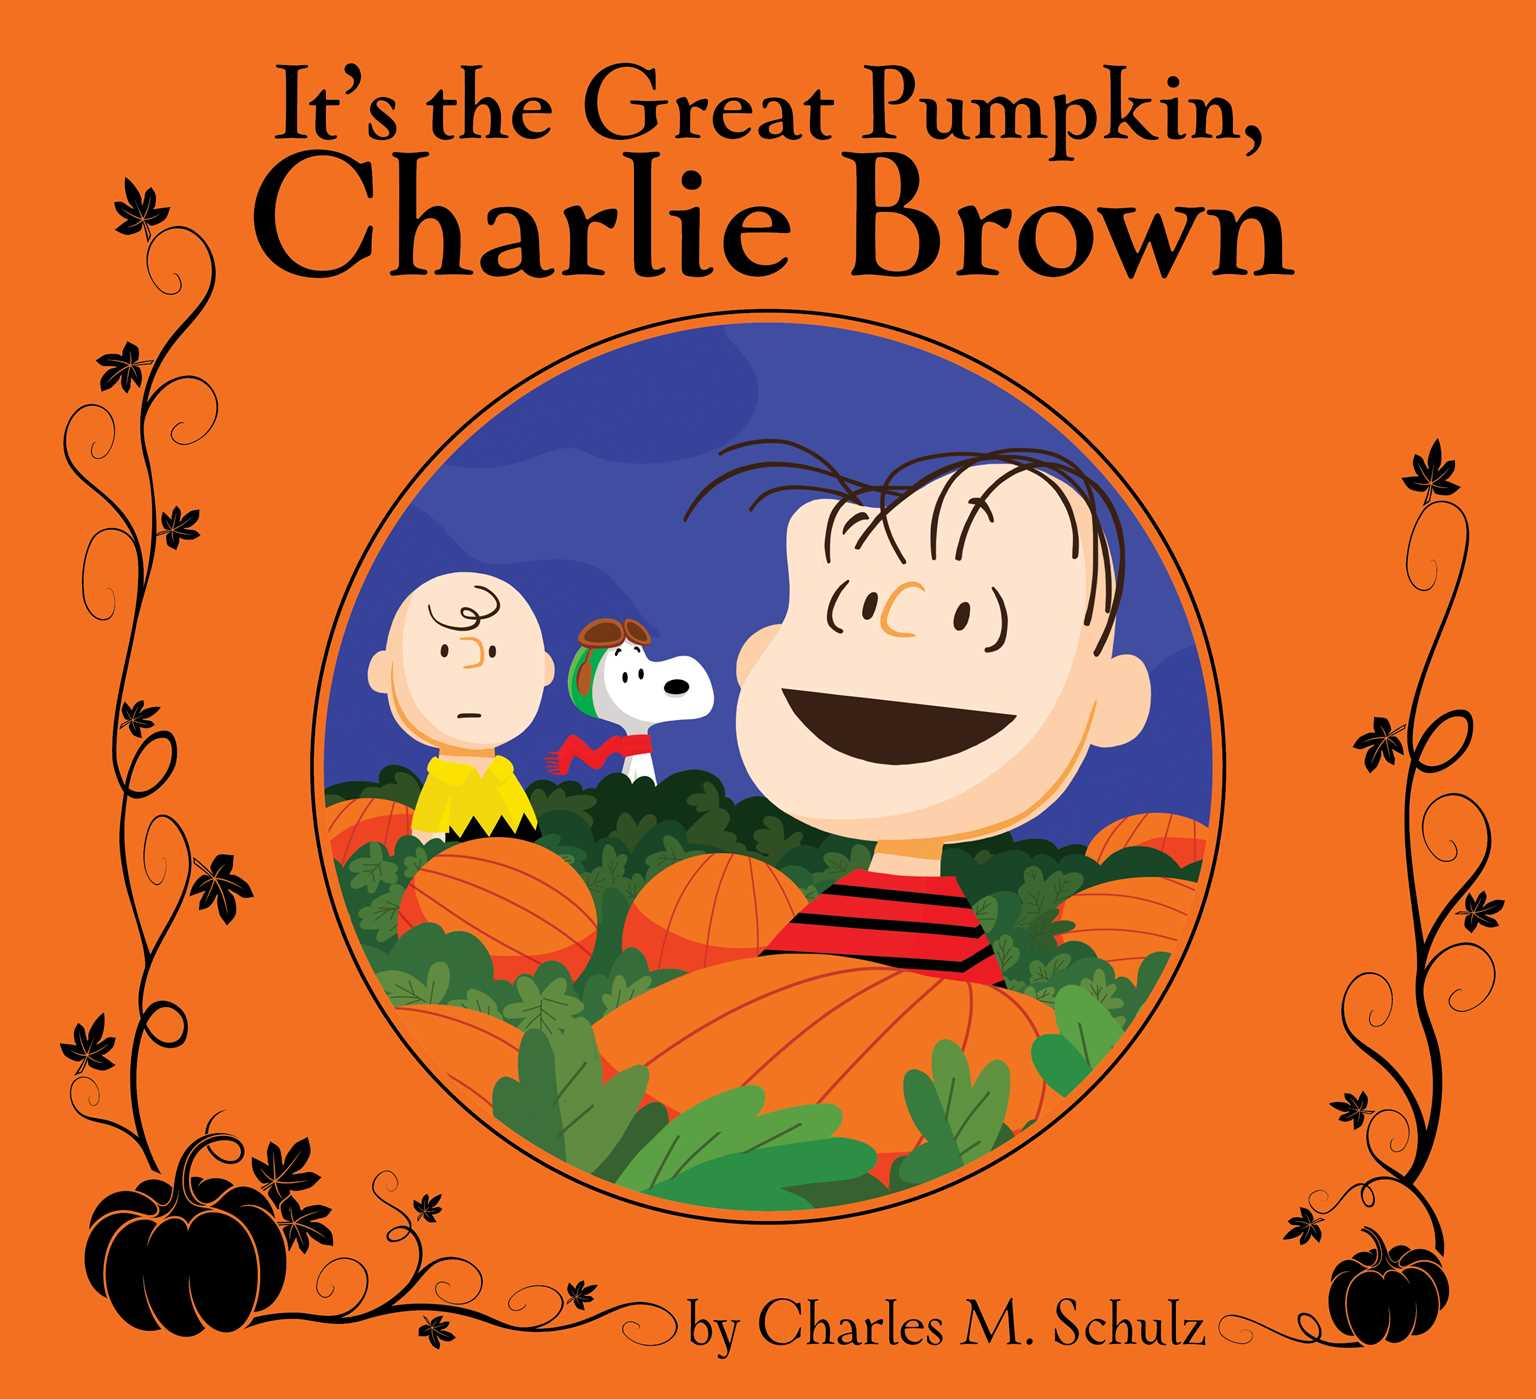 Book cover image jpg its the great pumpkin charlie brown